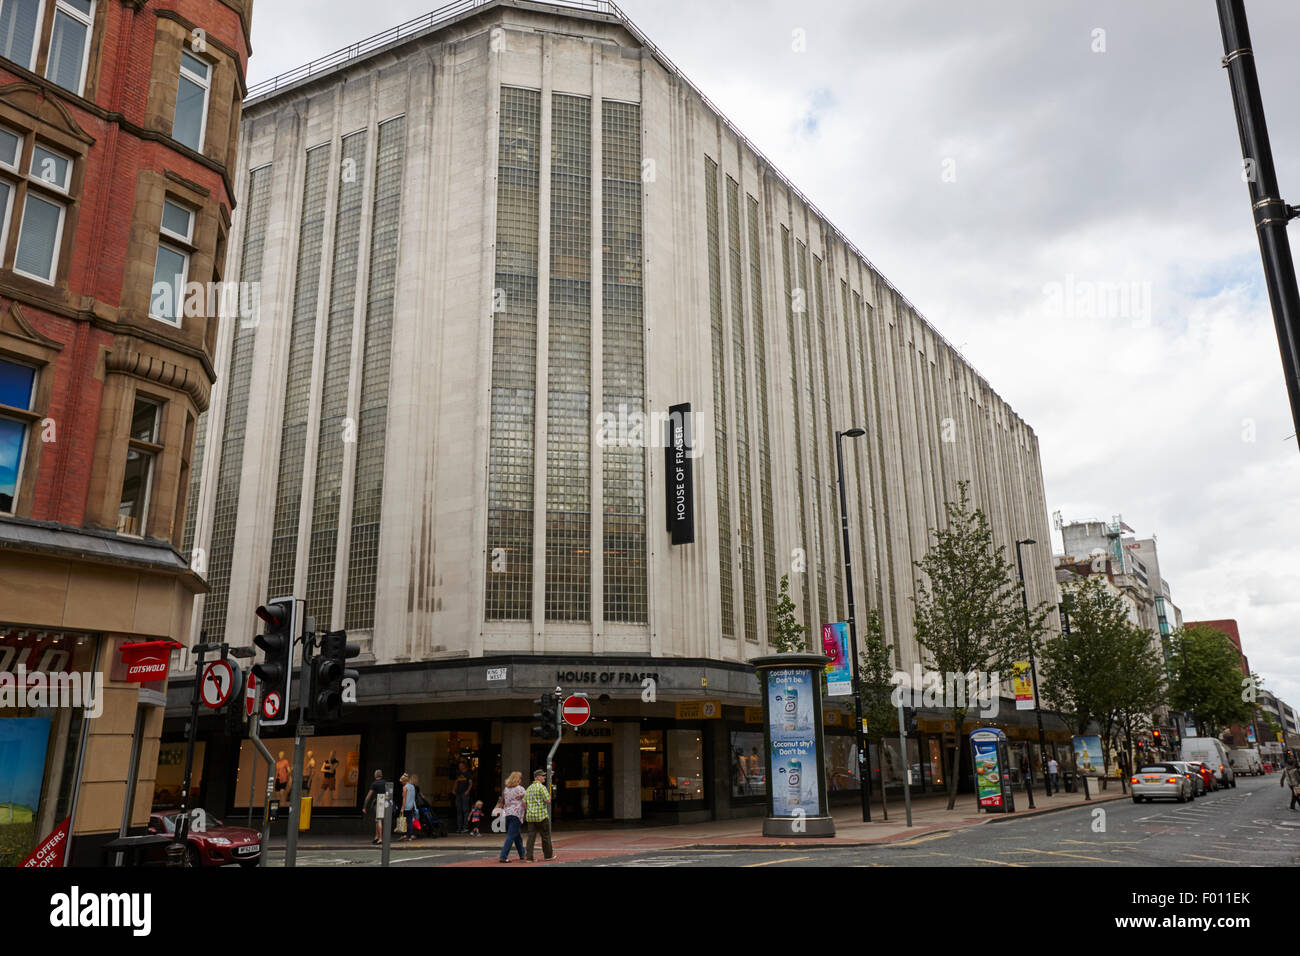 House of Fraser store on Deansgate Manchester England UK - Stock Image